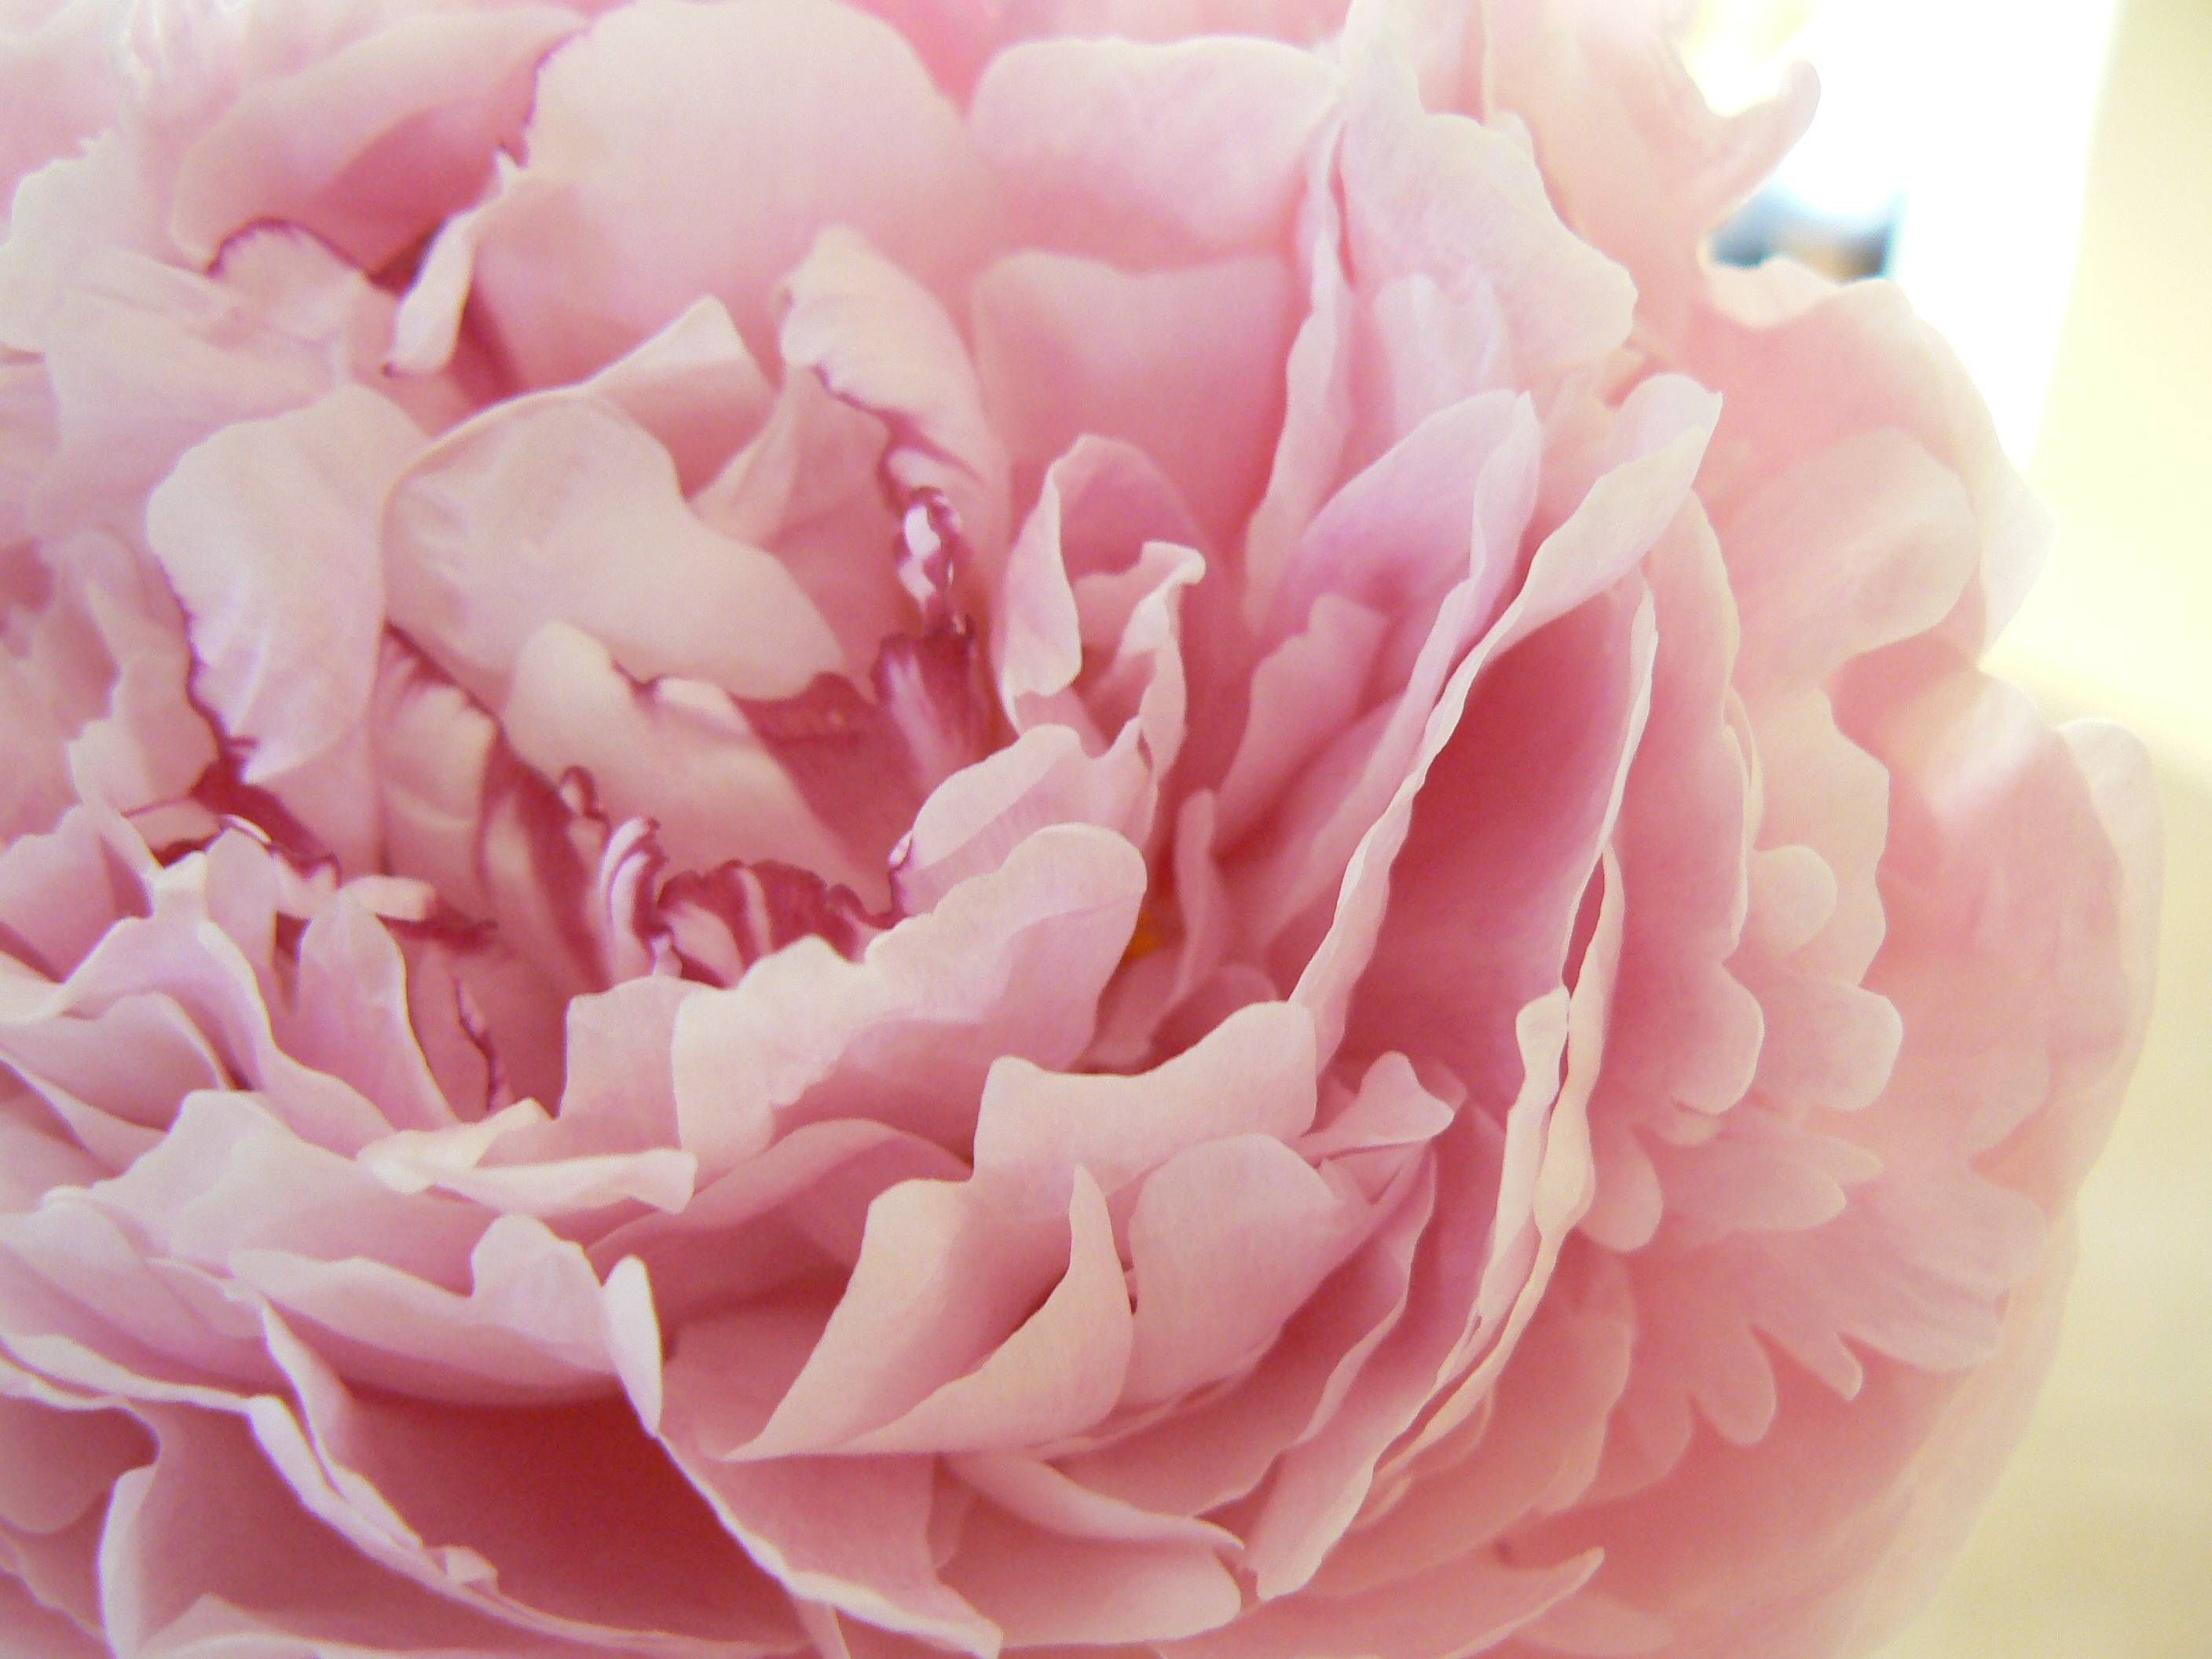 hd pink peony wallpaper free download / wallpaper database | flowers